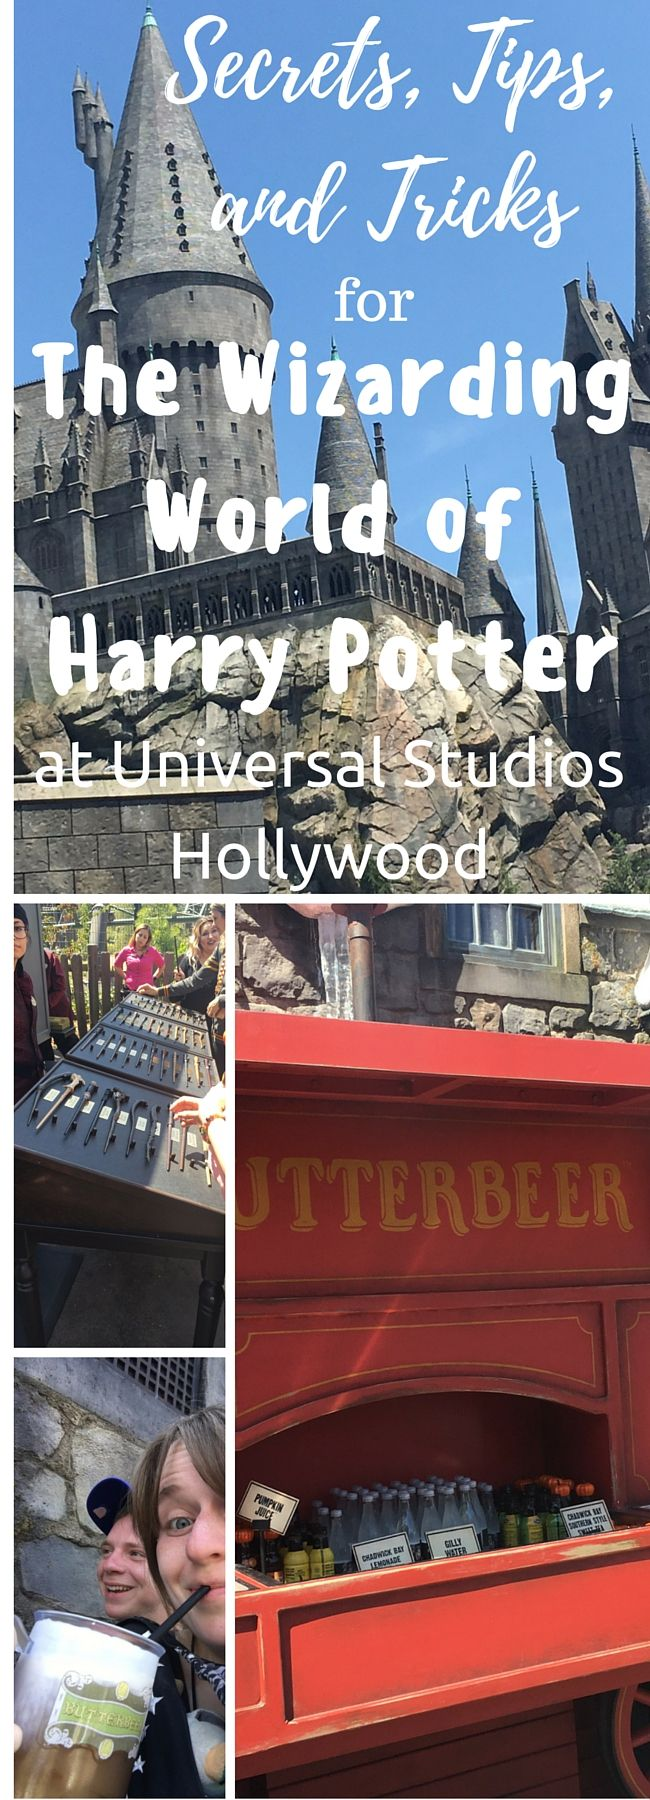 Secrets, Tips, and Tricks for the Wizarding World of Harry Potter